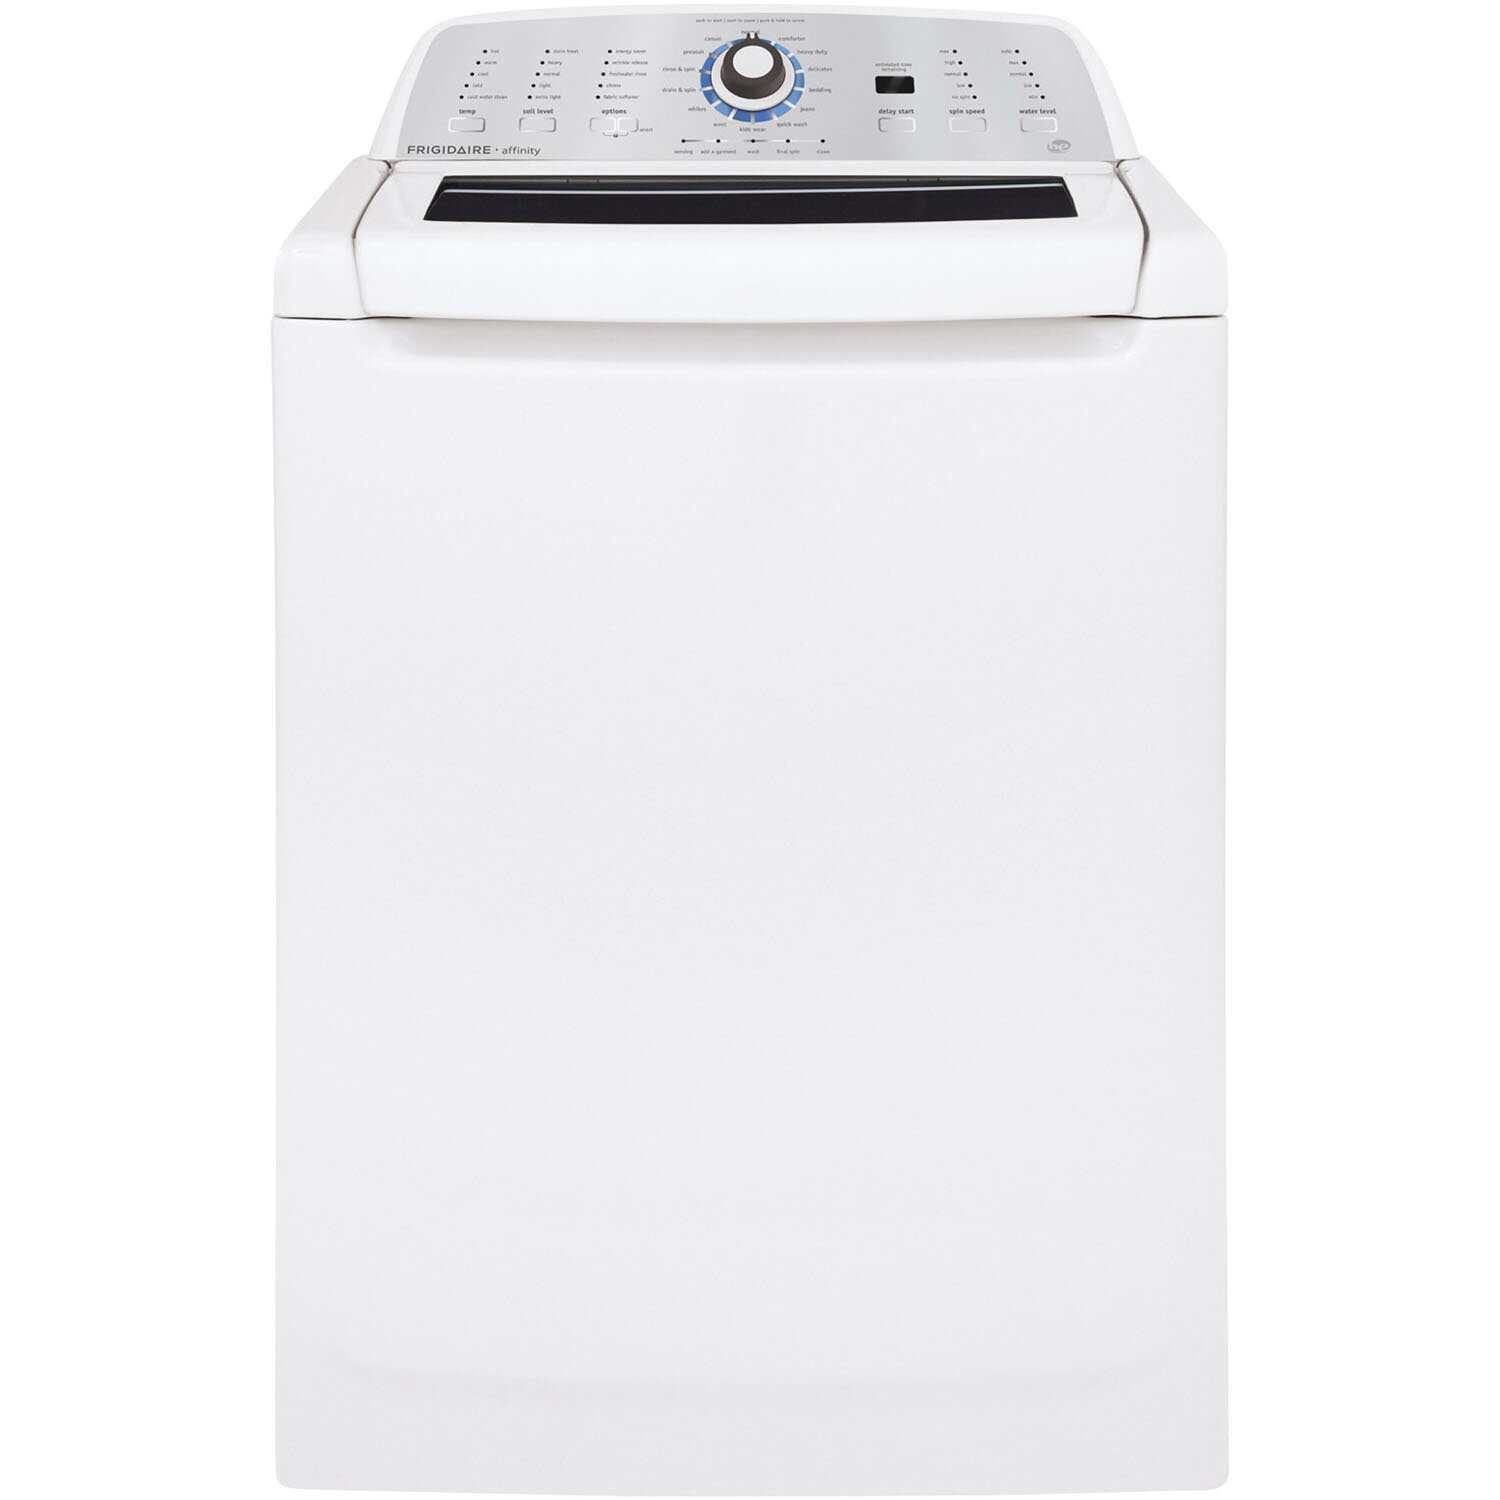 Regular Washer Vs He Washer Cu Ft Top Load Washer Faheqw